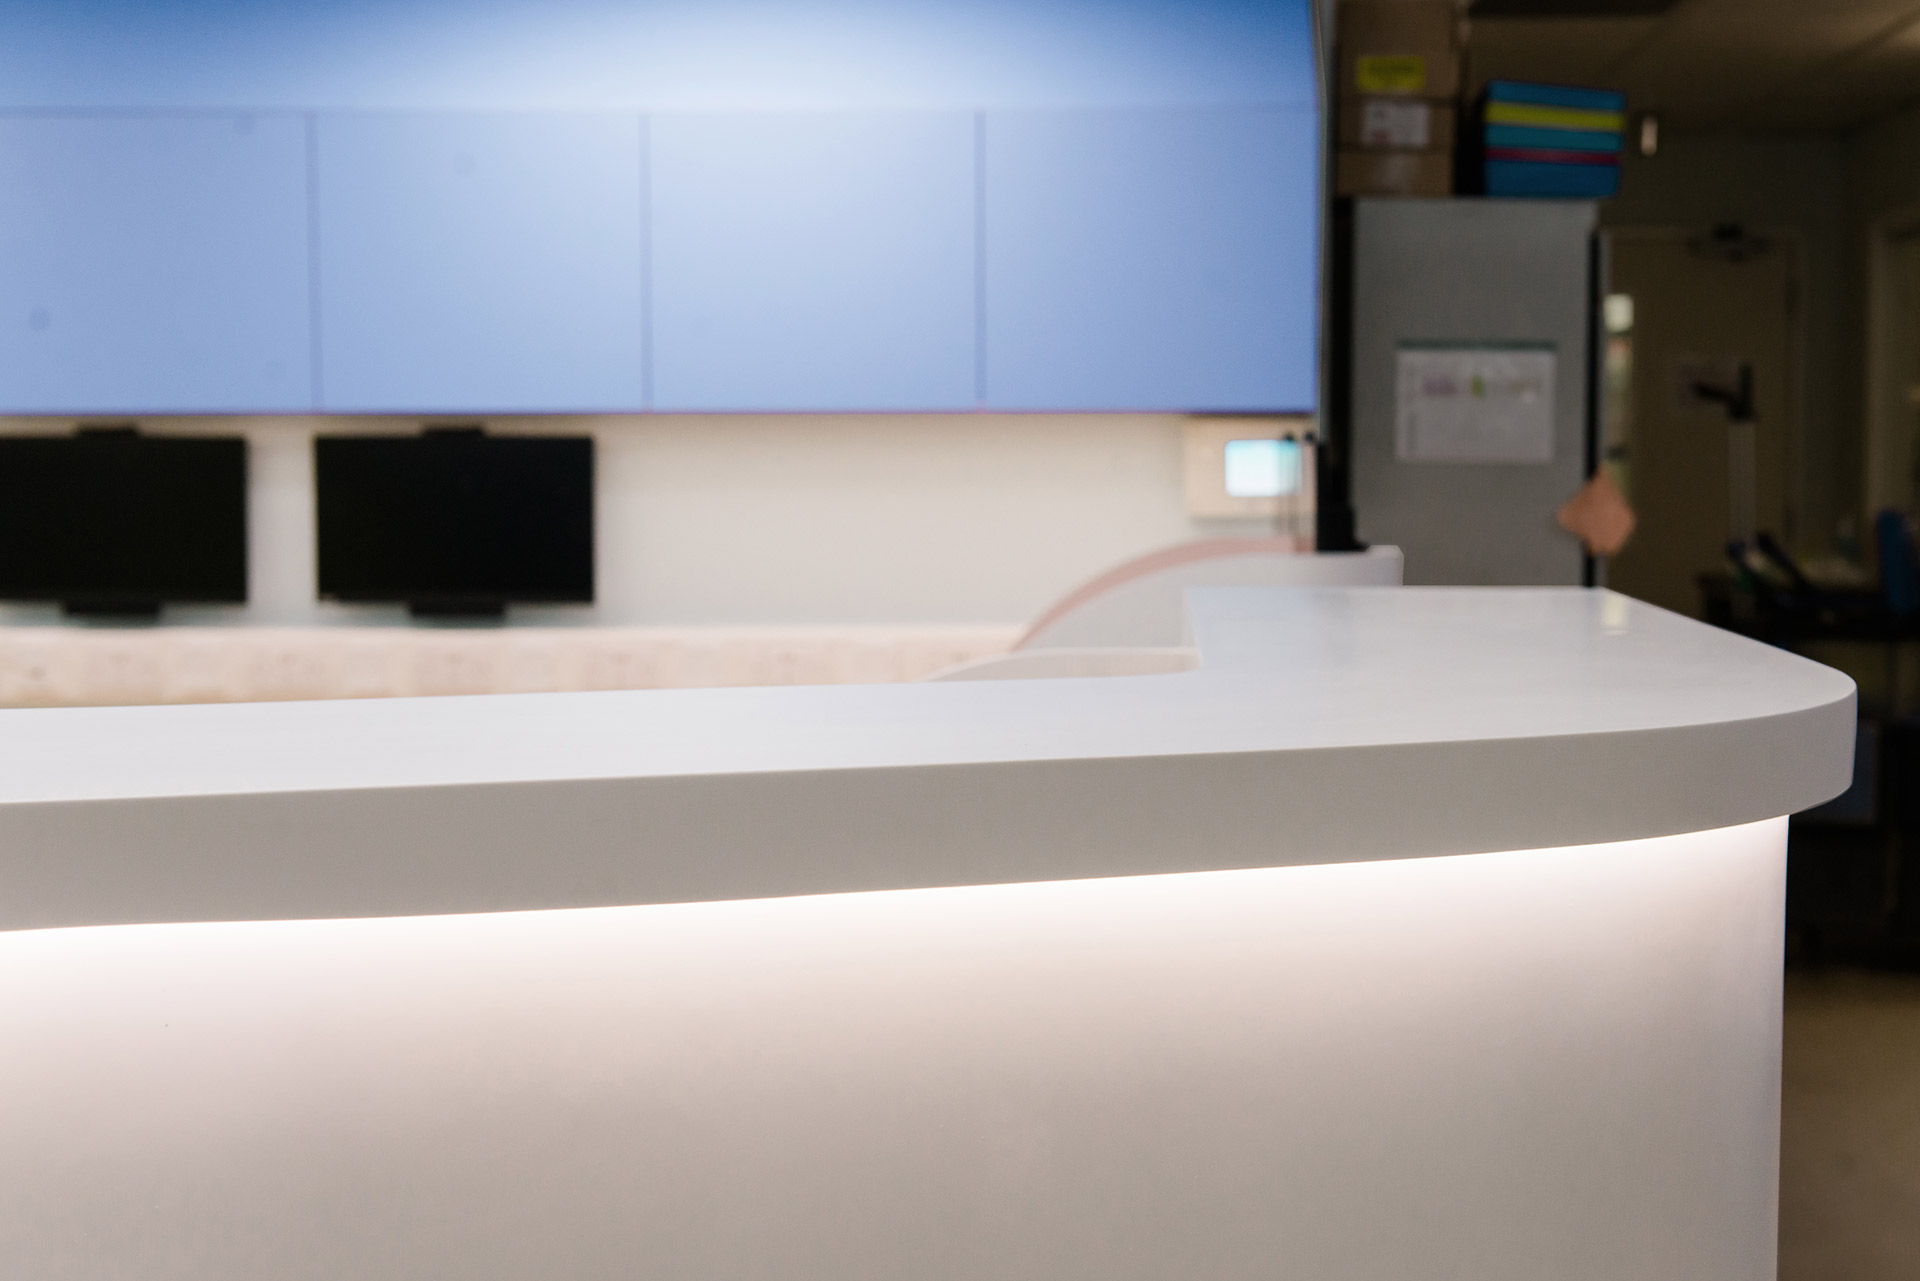 Corian nurses station at intensive care ward designed by Boex